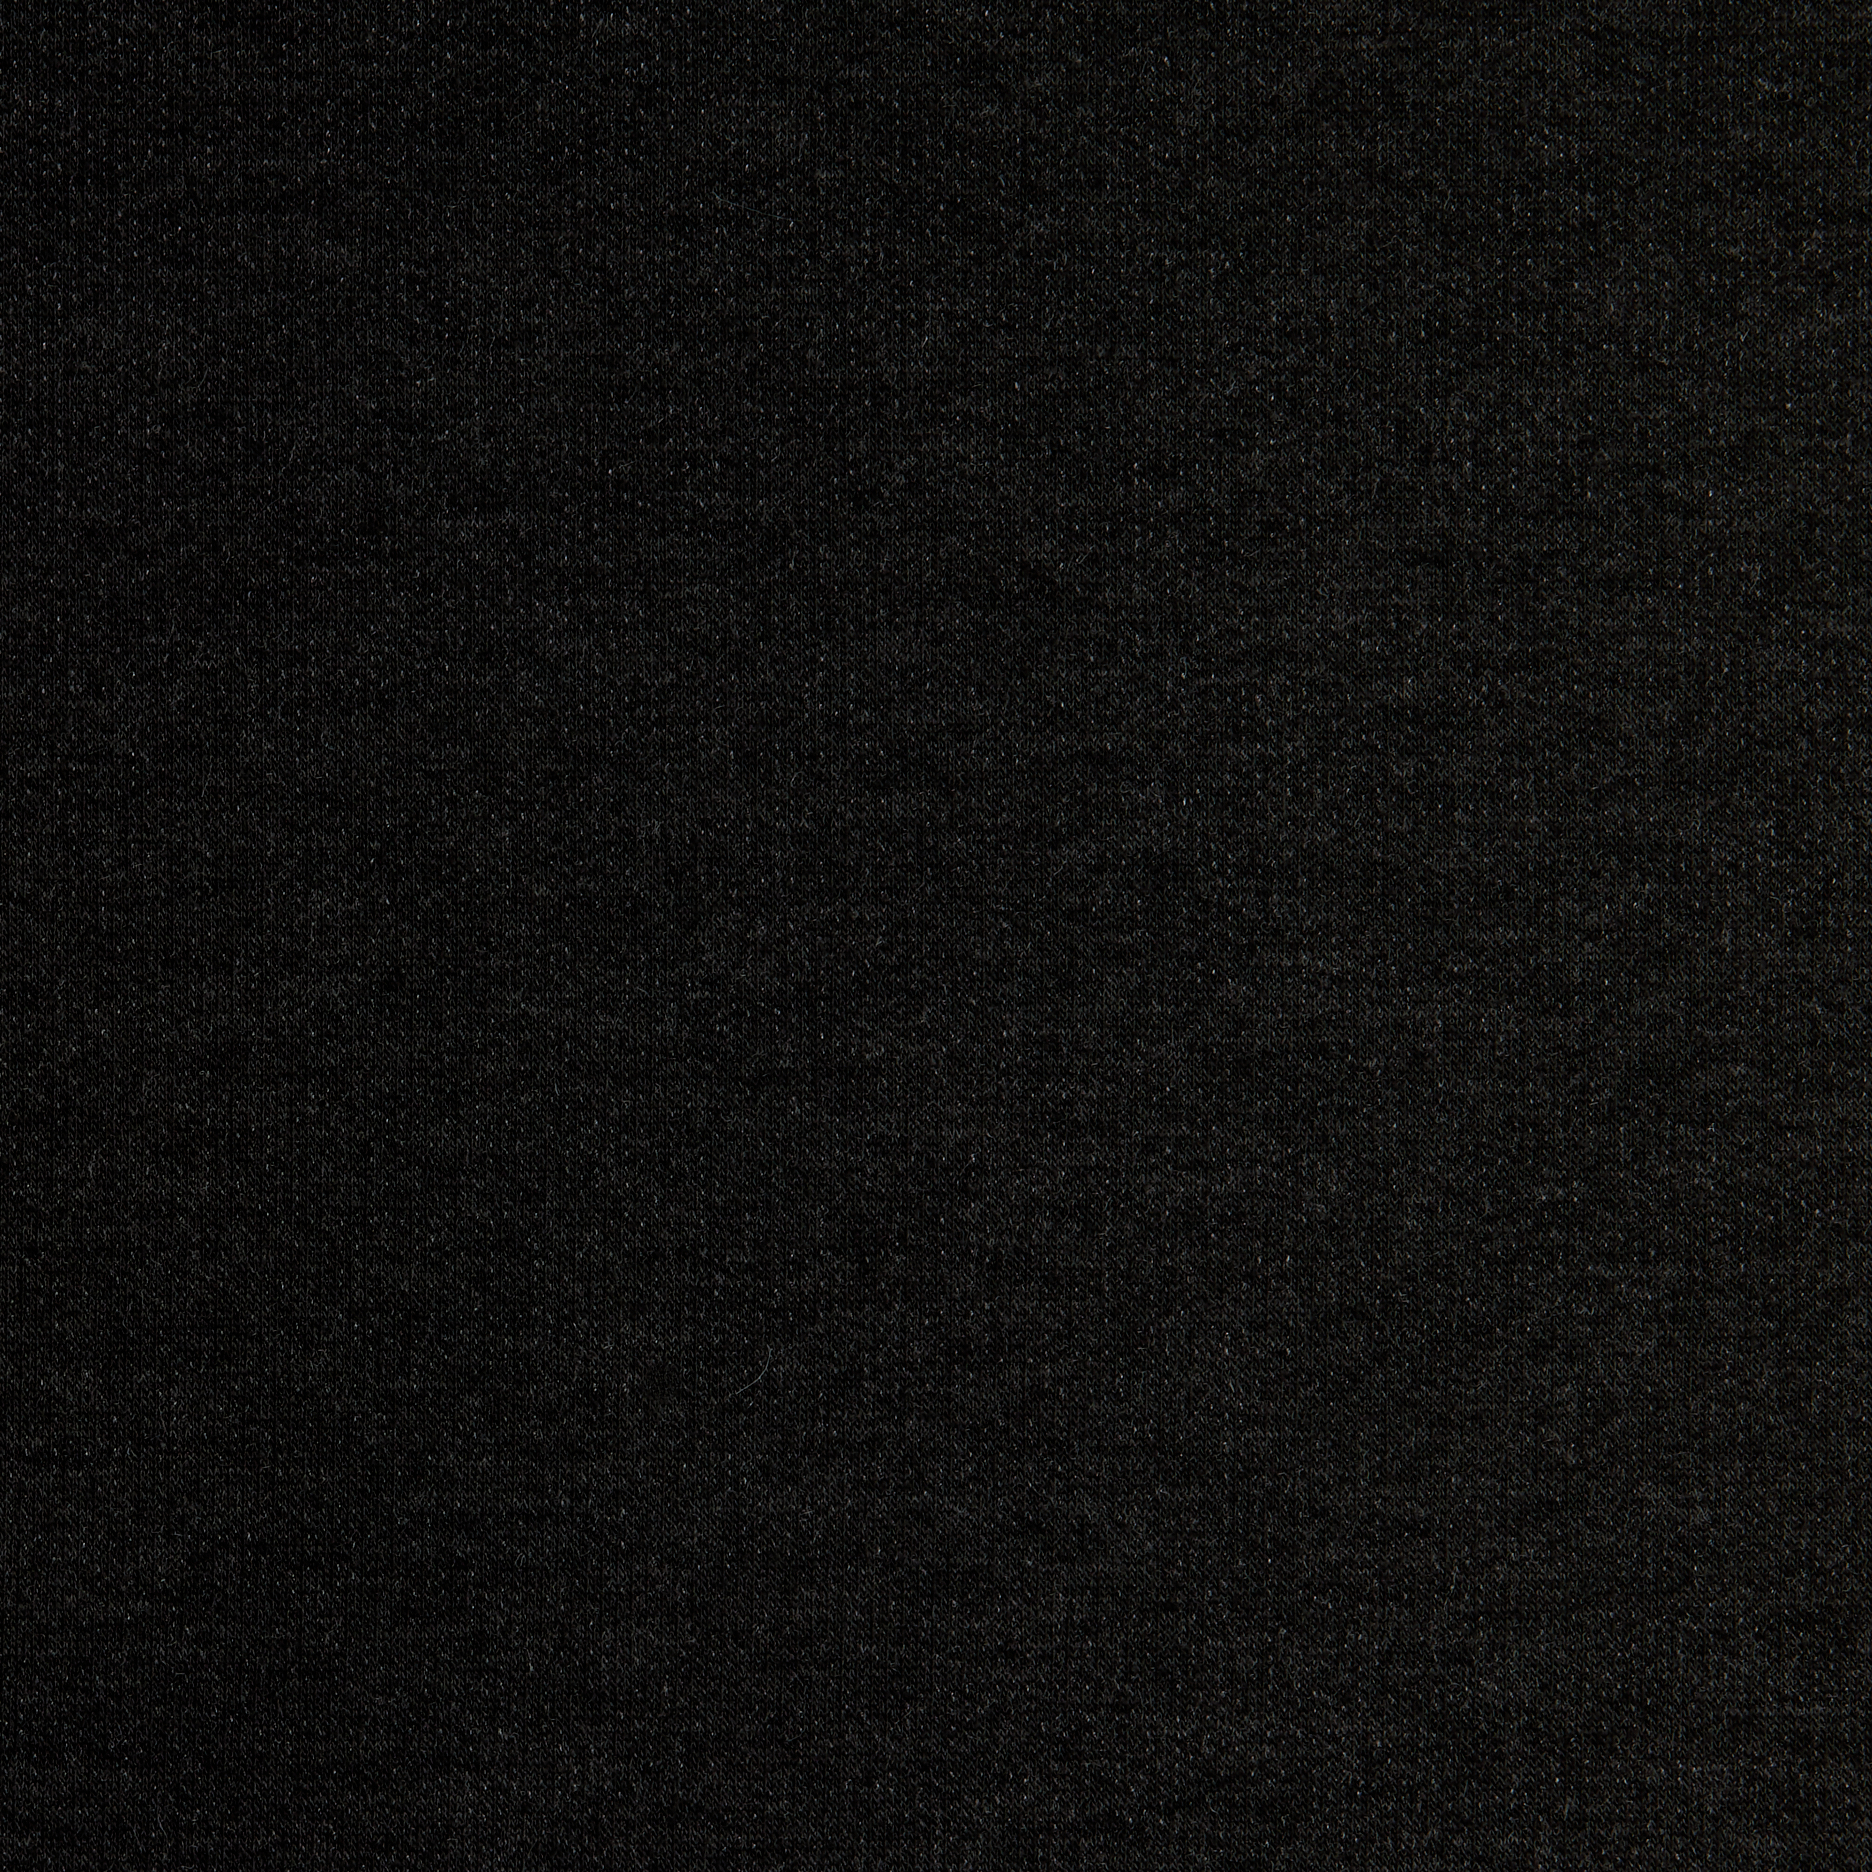 Stretch French Terry Charcoal Fabric 0451746